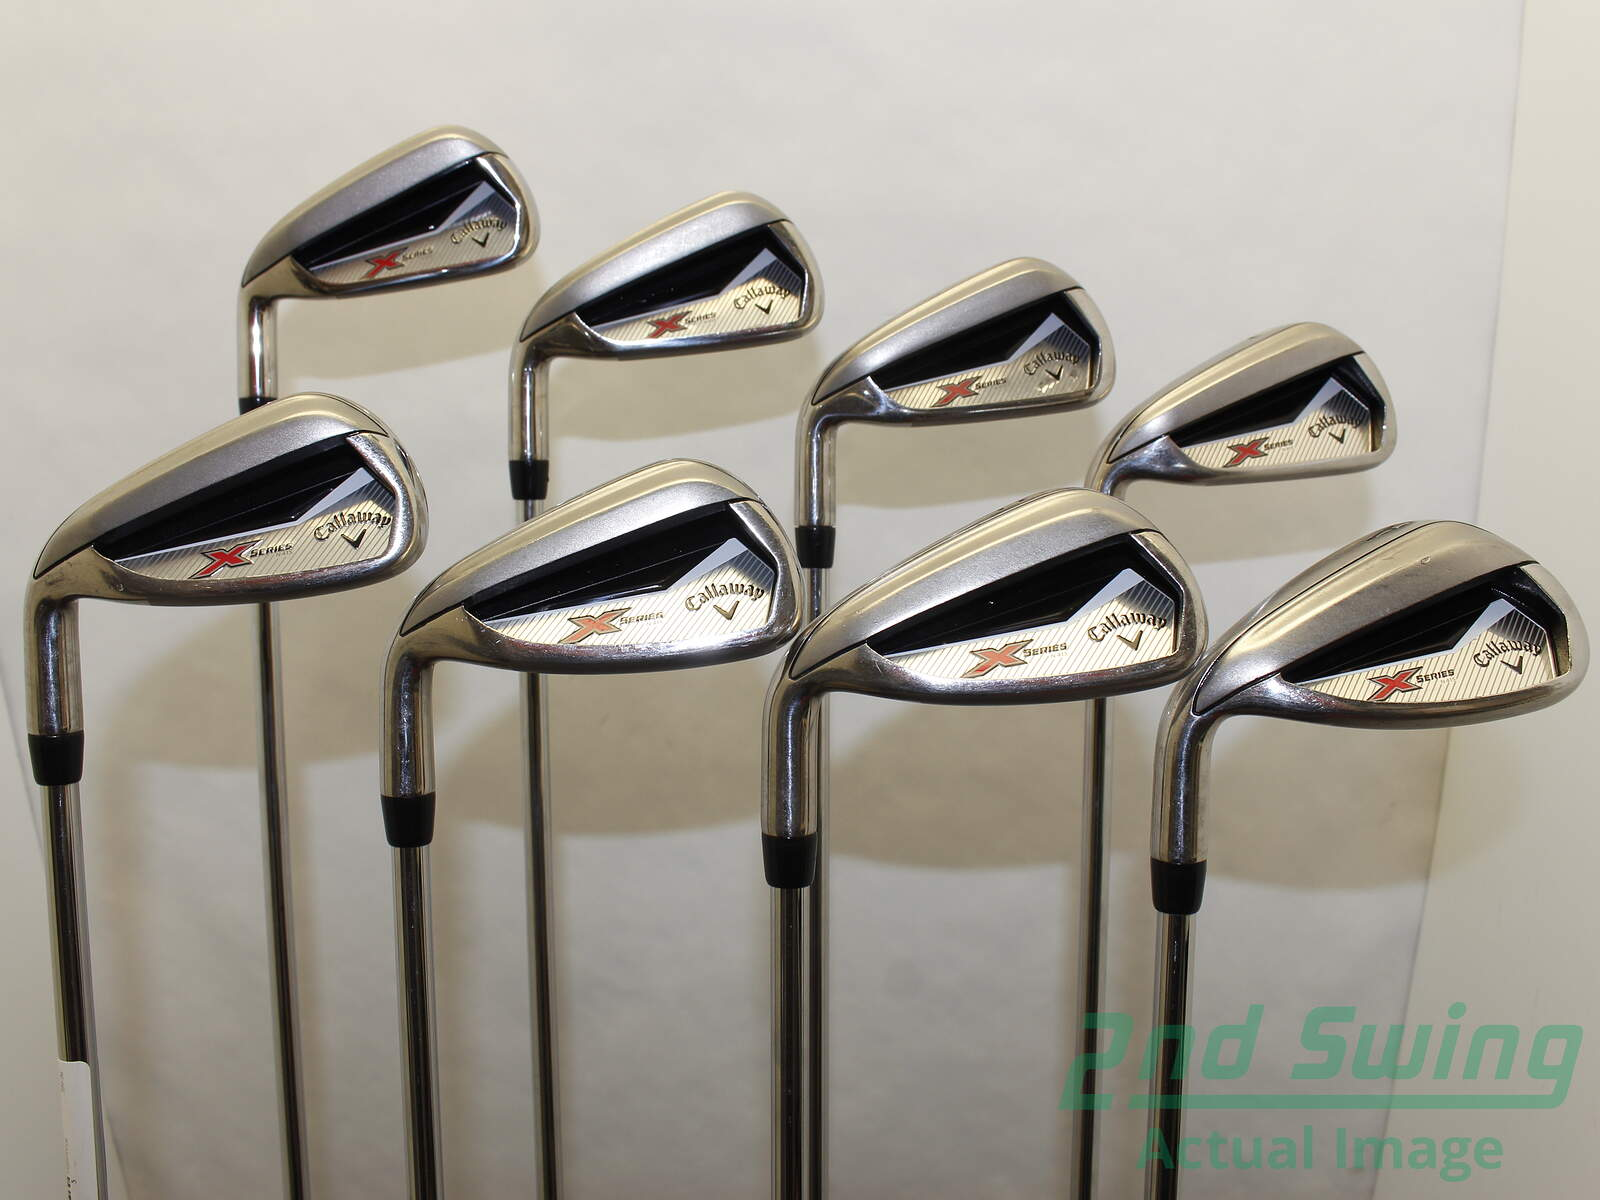 Used Callaway X Series N415 Iron Set 4 Pw Gw Stock Steel Shaft Steel